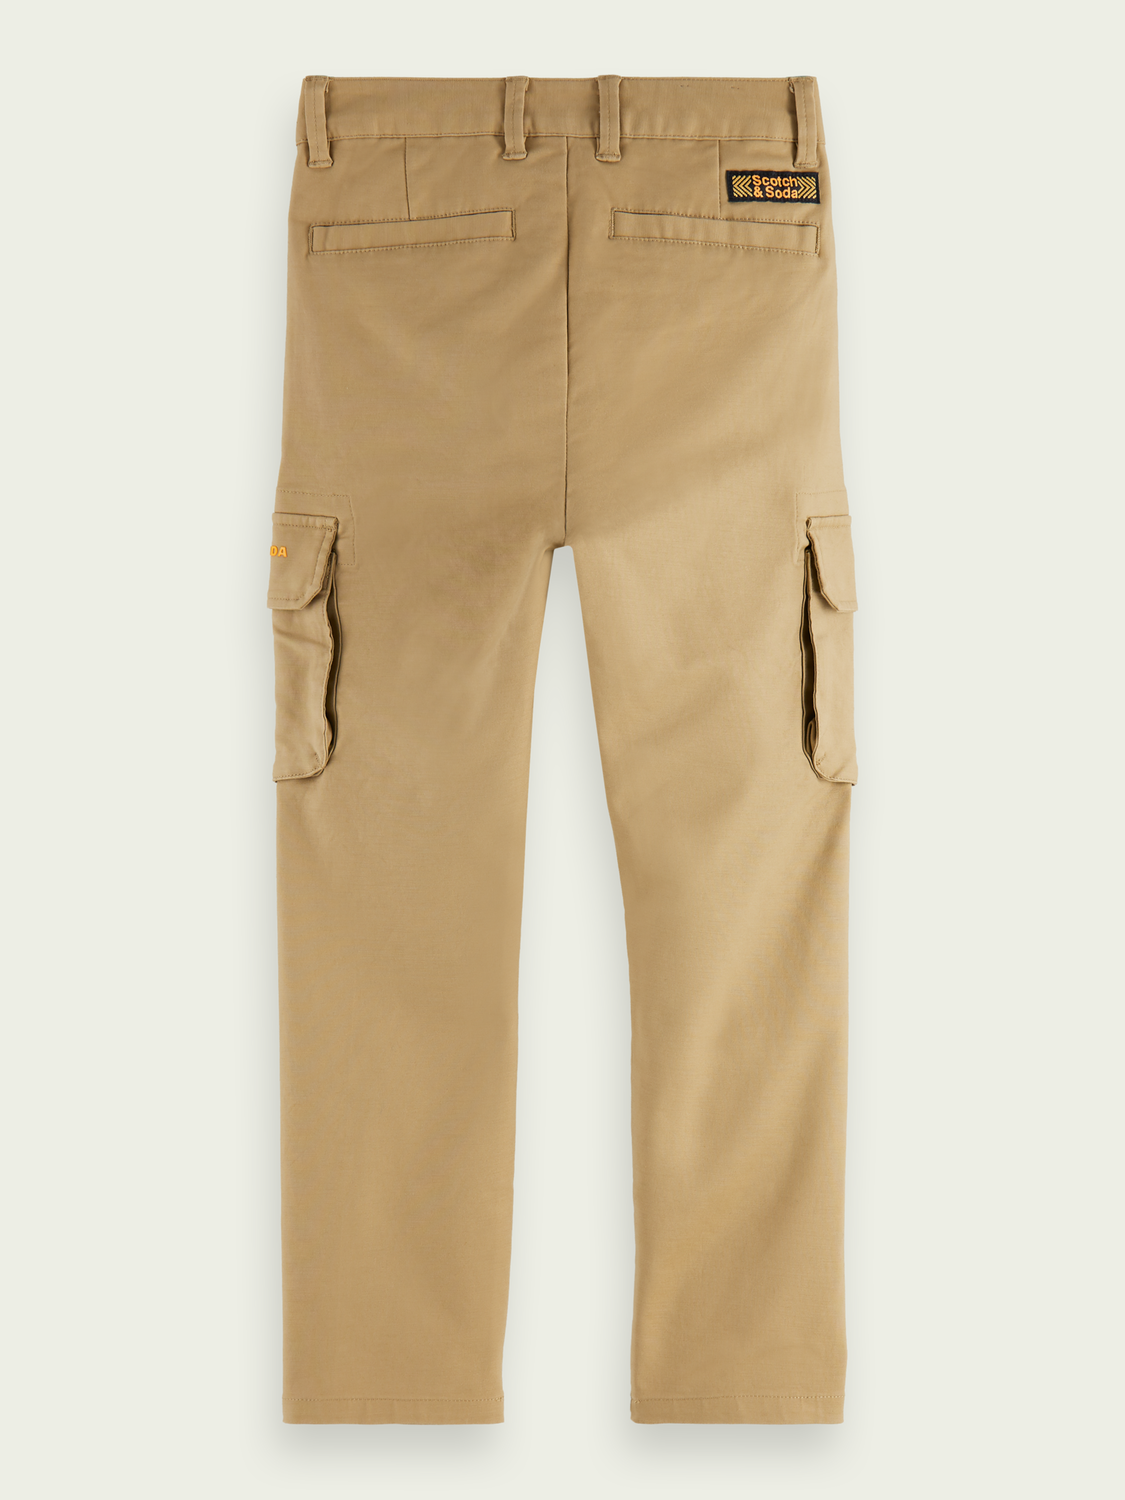 Boys Clean cargo pants | Loose tapered fit